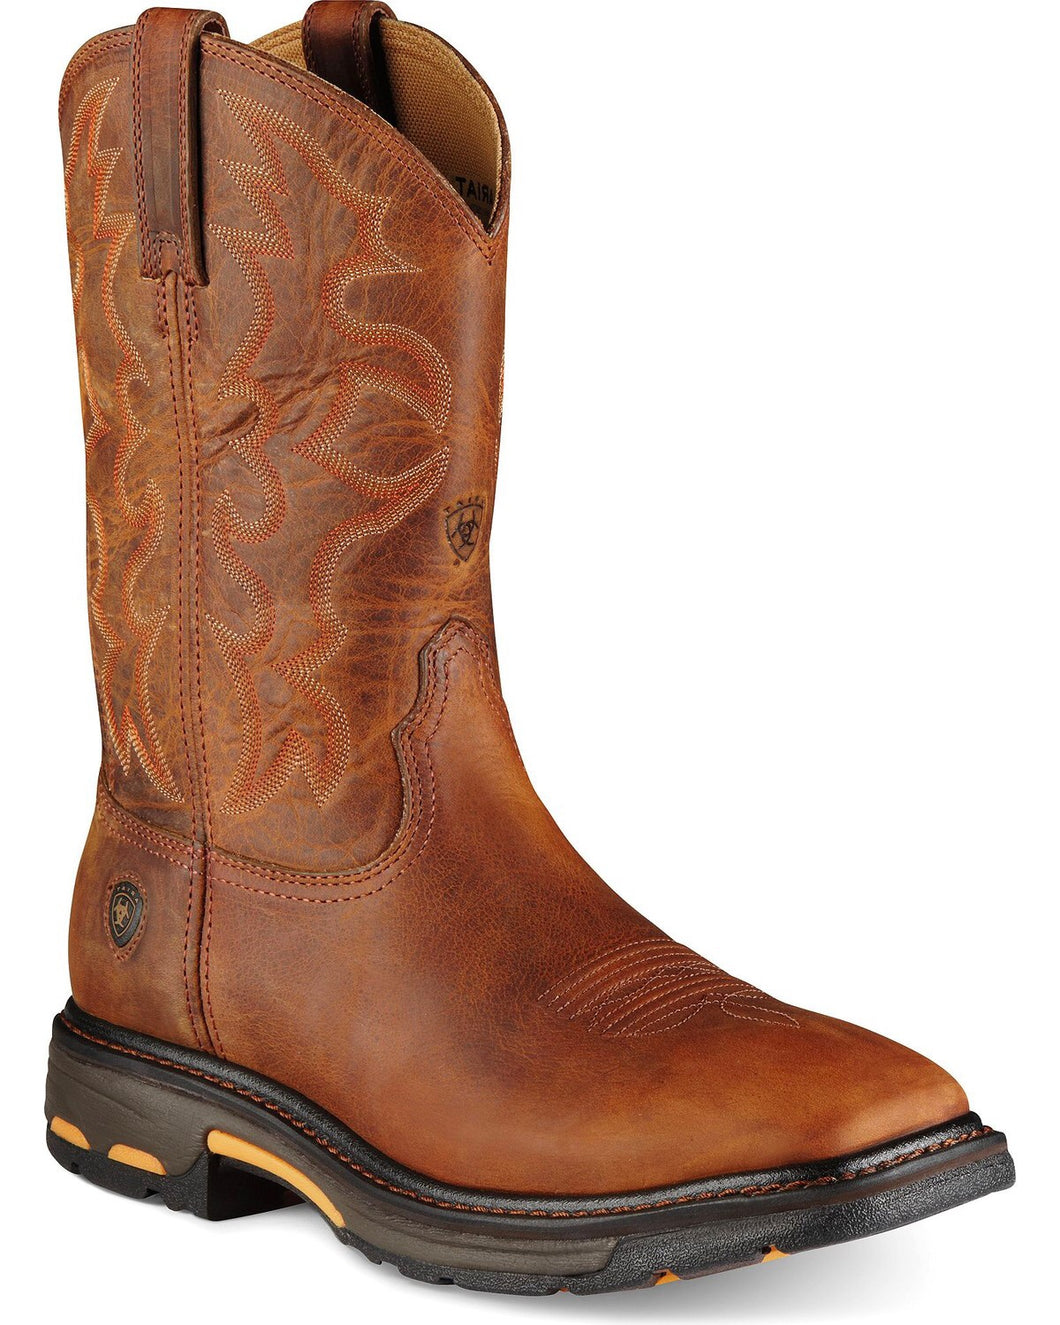 Men's Ariat Workhog Toast Square Toe Boots